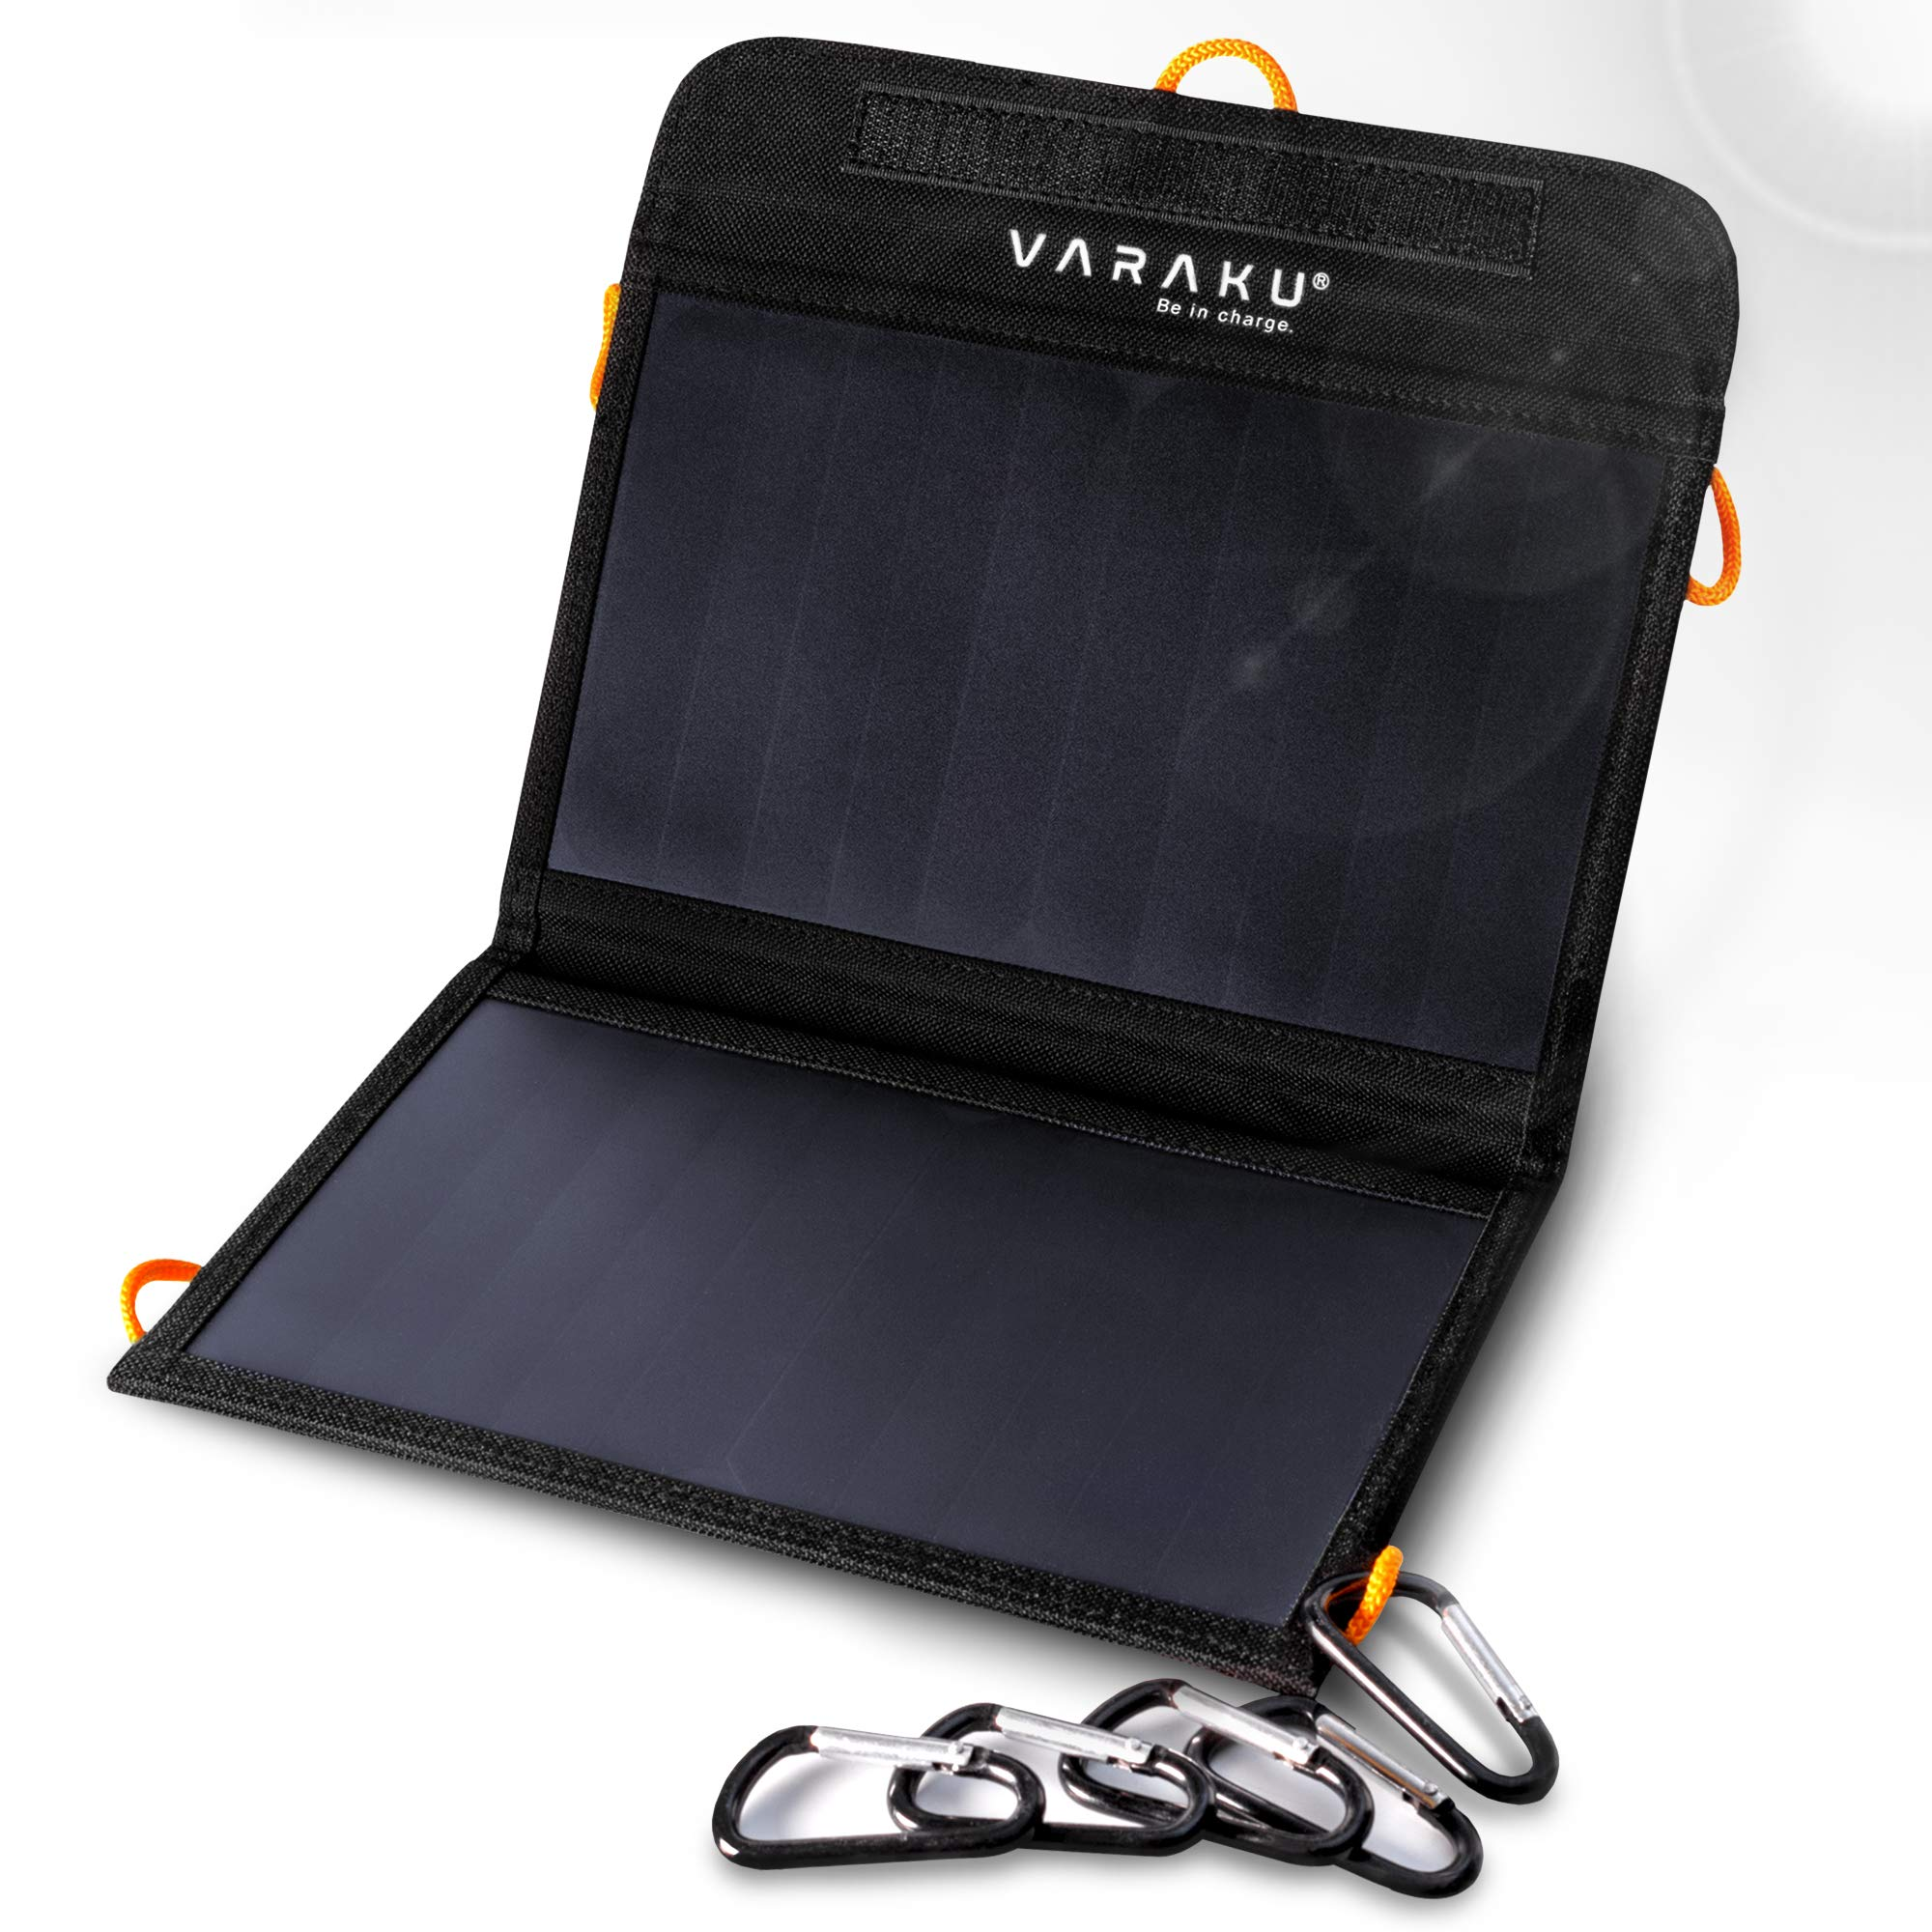 Portable Solar Charger 10W - Dual USB Solar Panel Foldable - Best Power for, iPhone, X, 8, 7, 6s, iPad, Cell Phone Android & Electronic Devices - Waterproof Sun Phone Charger for Camping & Hiking by VARAKU